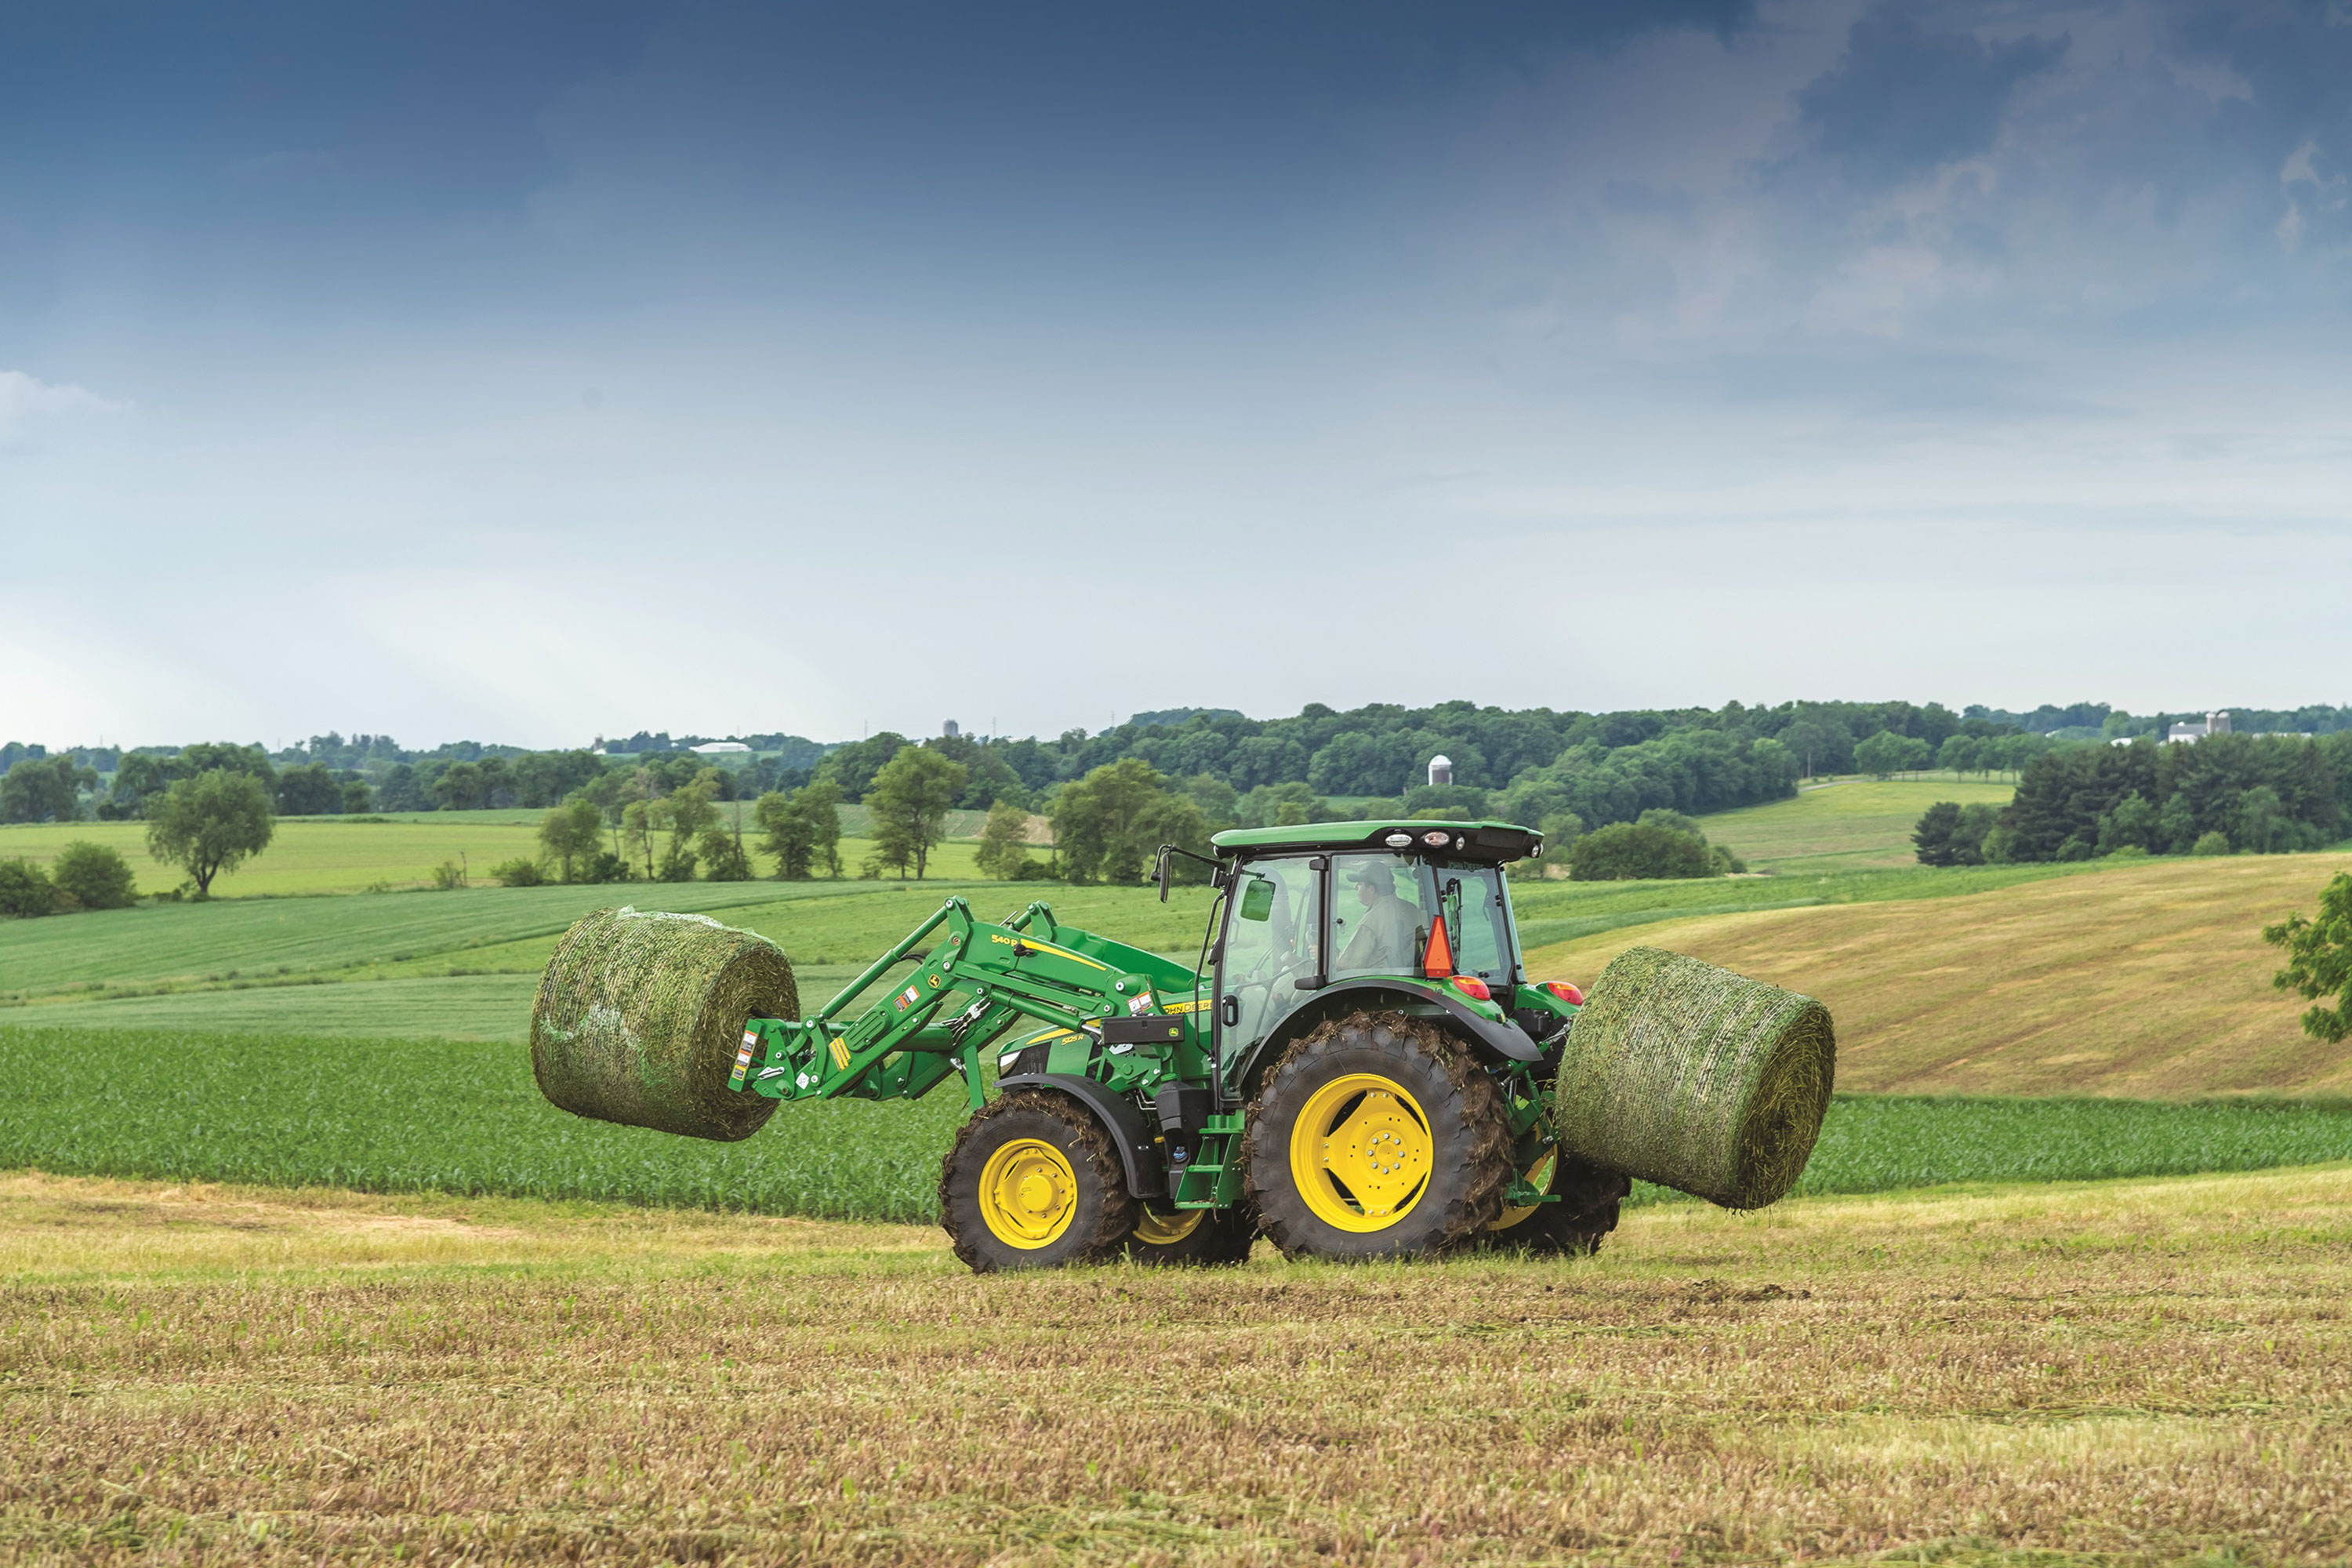 New John Deere 5R Series Tractors are available with two fully ...